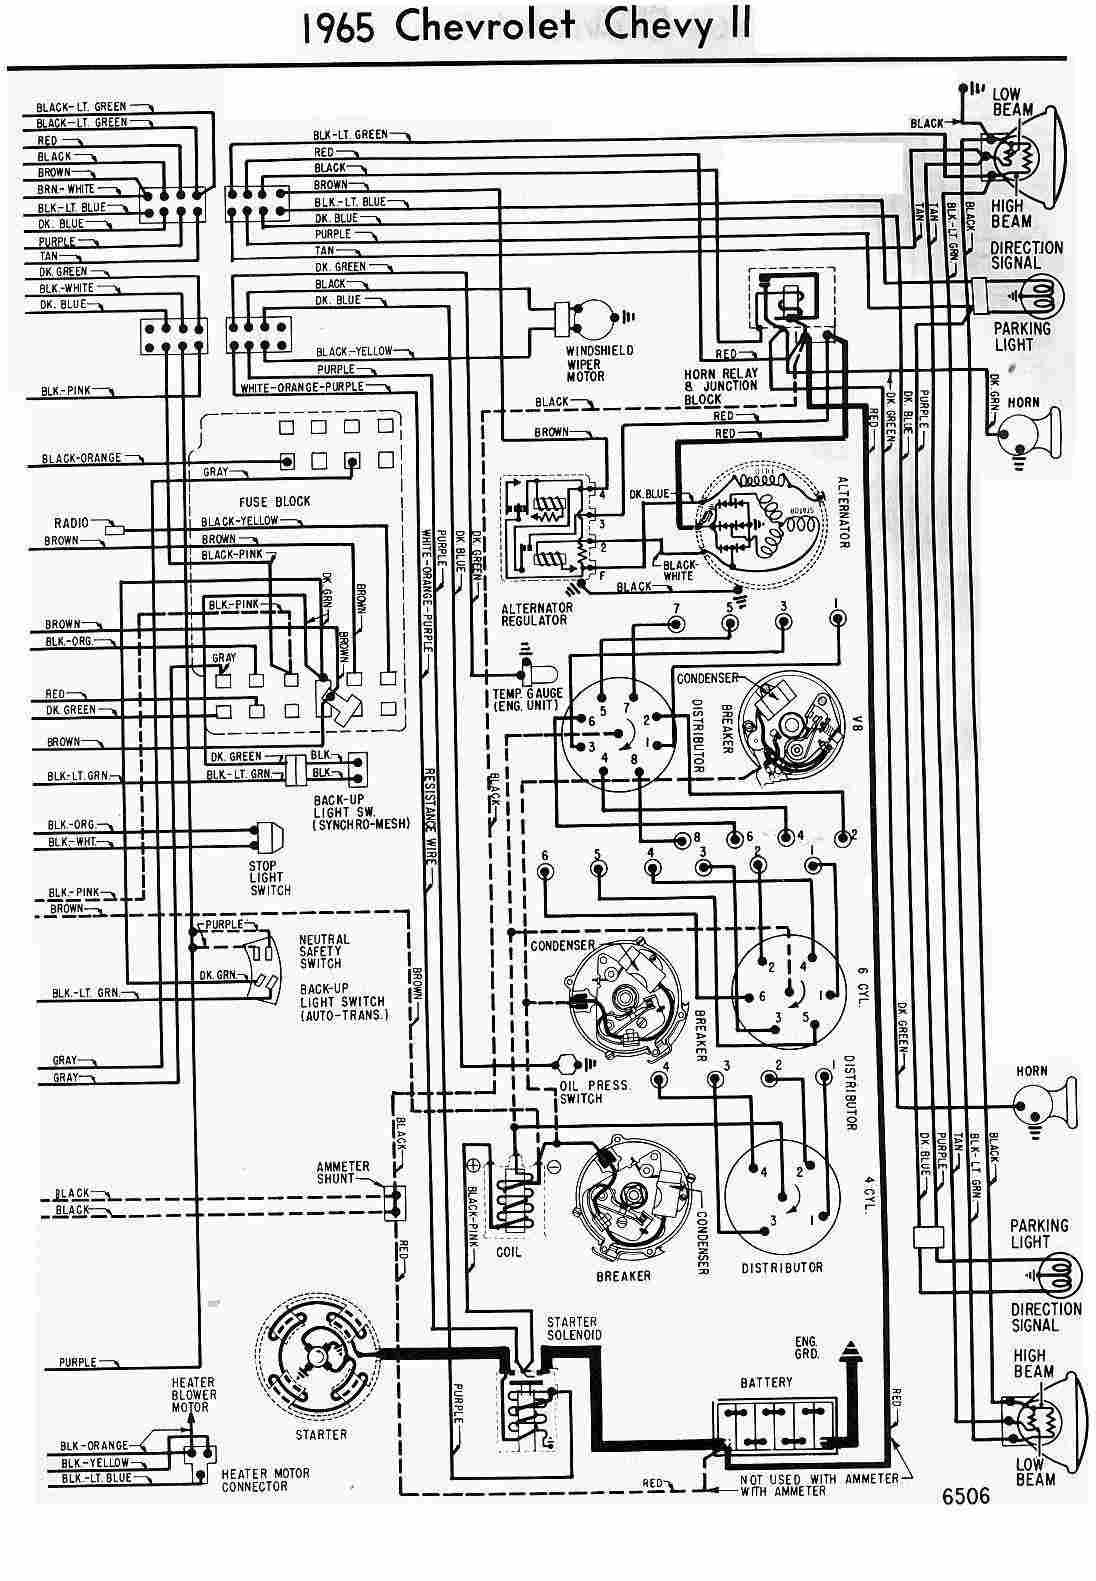 1965 Chevy Pickup Wiring Diagram: Magnificent 65 Chevy C10 Wire Diagram  Contemporary - Electrical rh